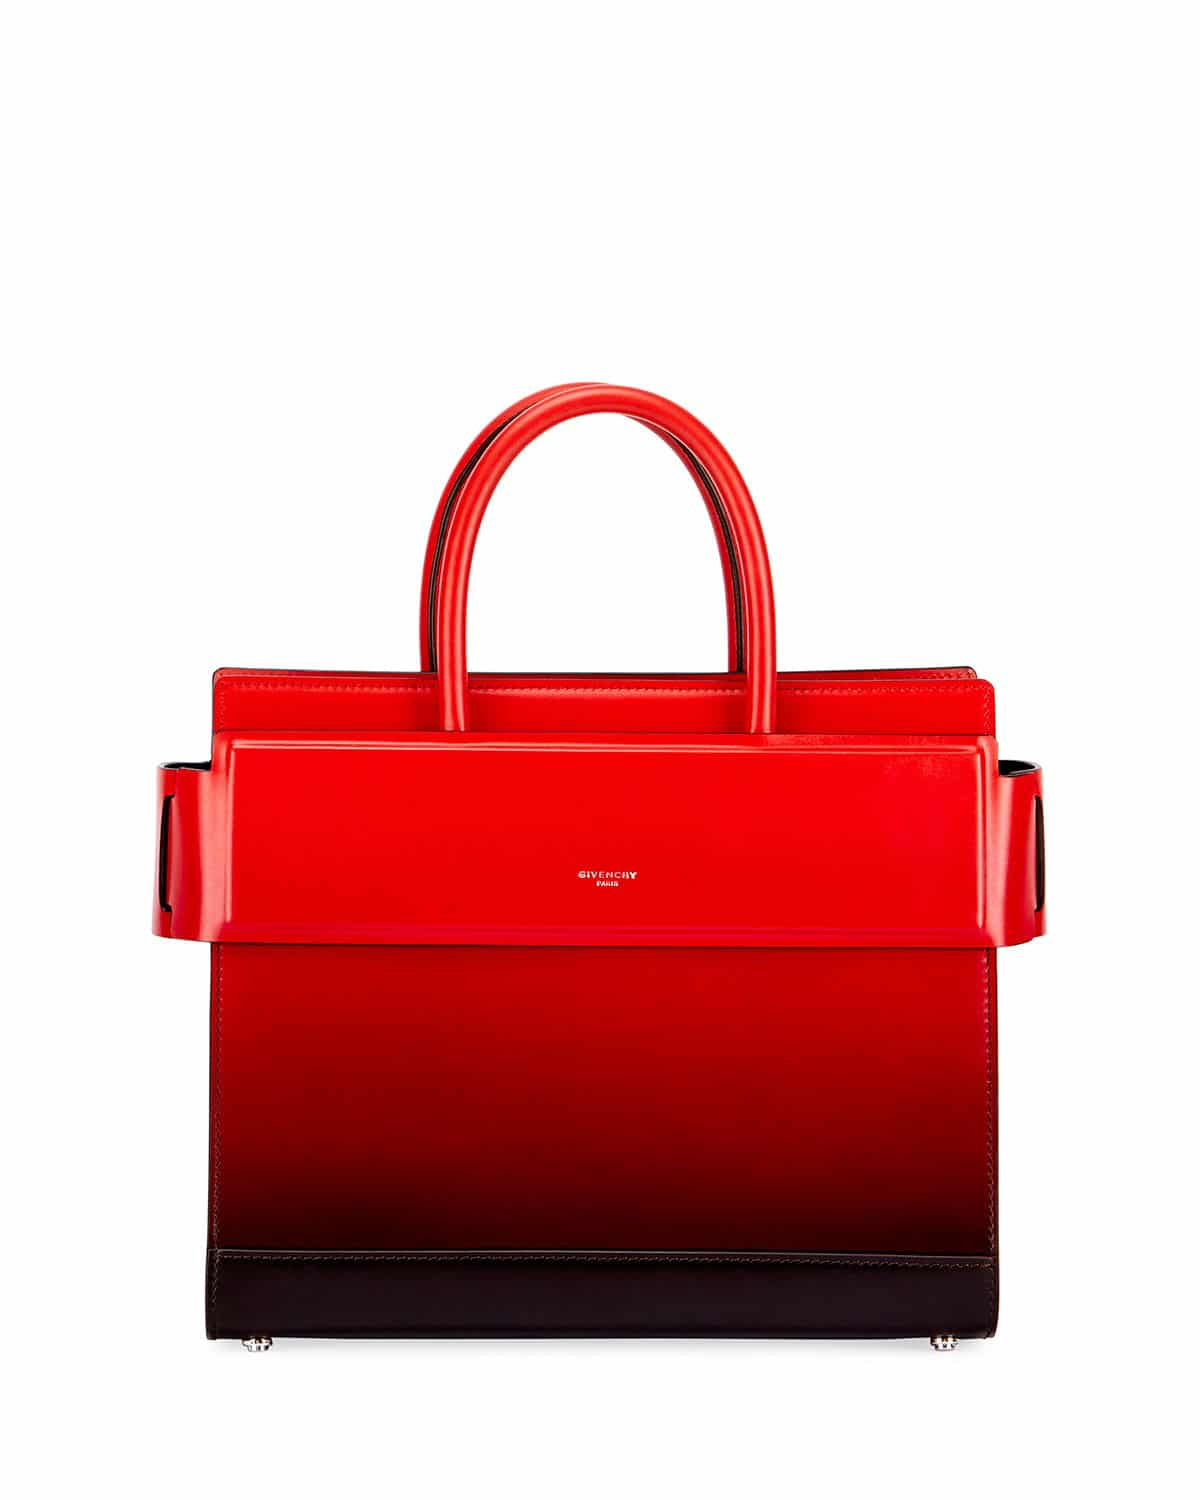 cca6ca64ff Givenchy Black Red Gradient Spray Small Horizon Bag